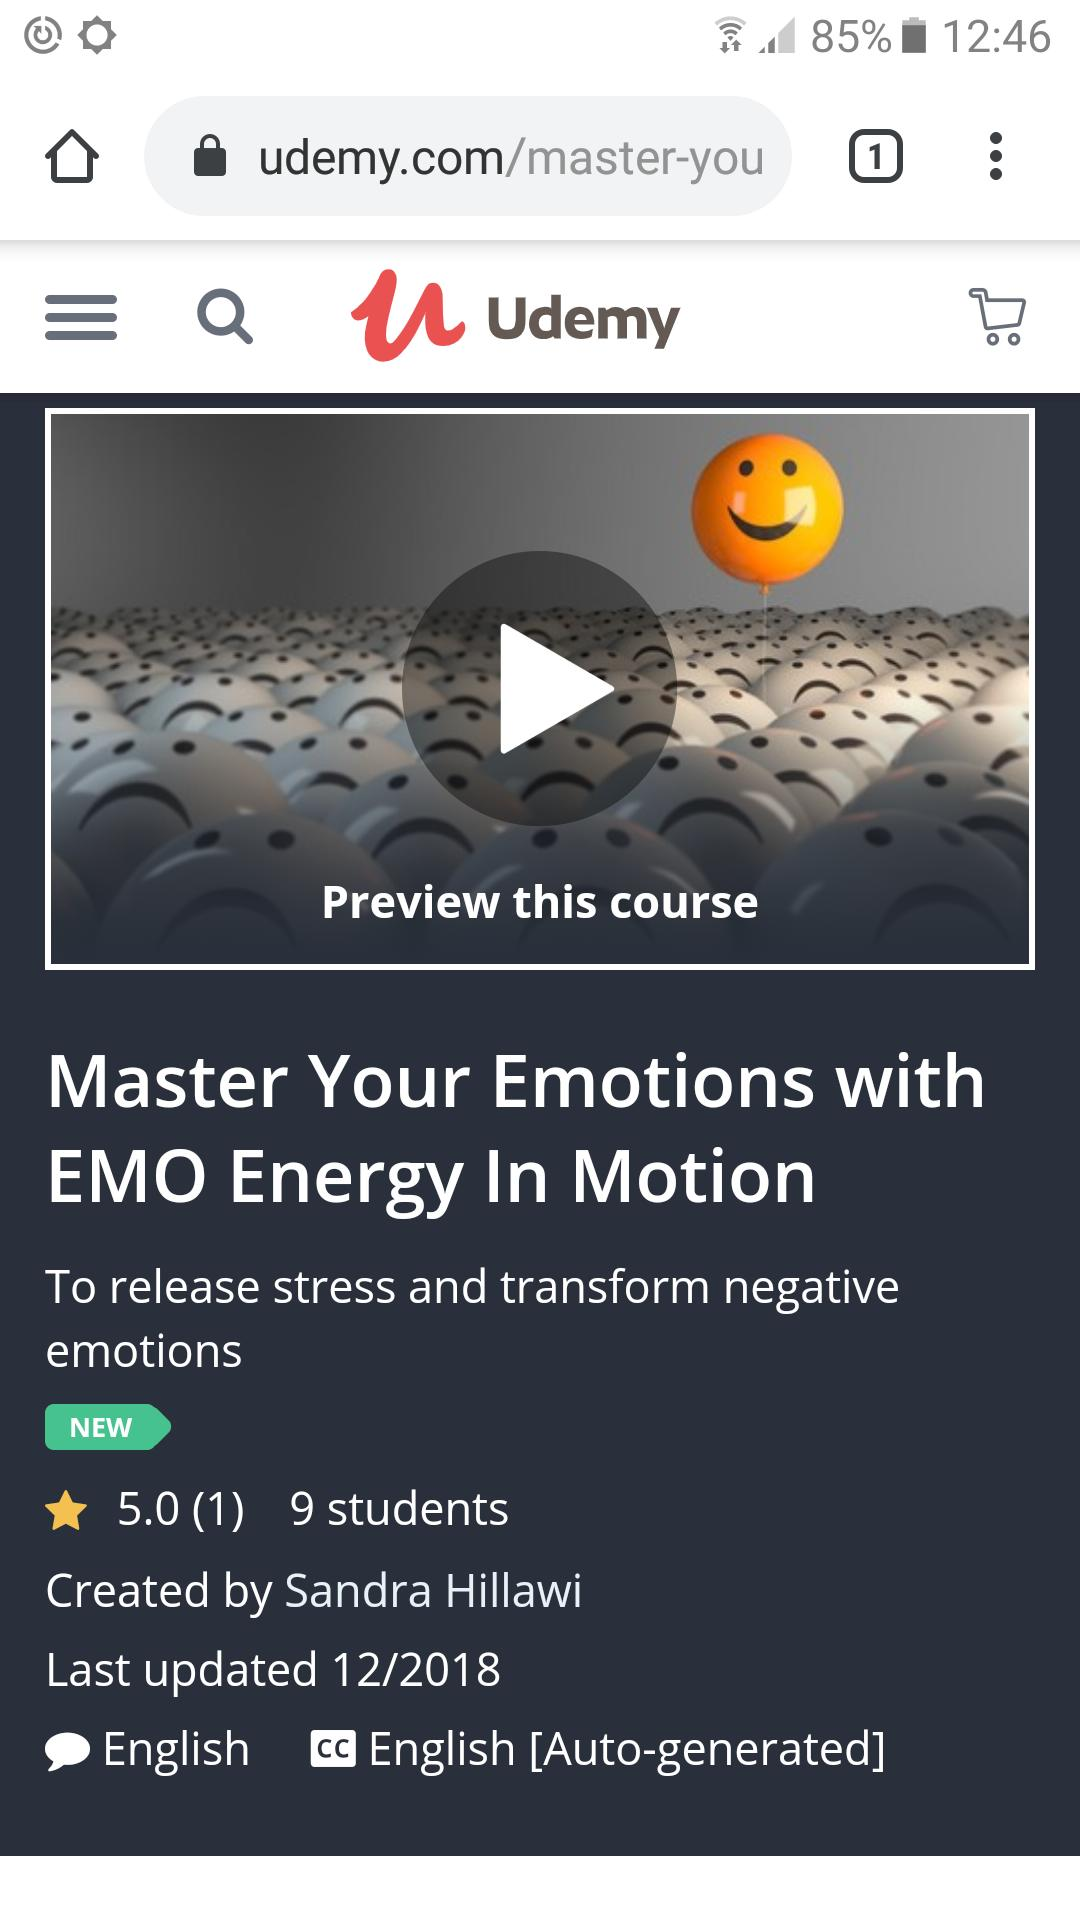 Master Your Emotions with EMO